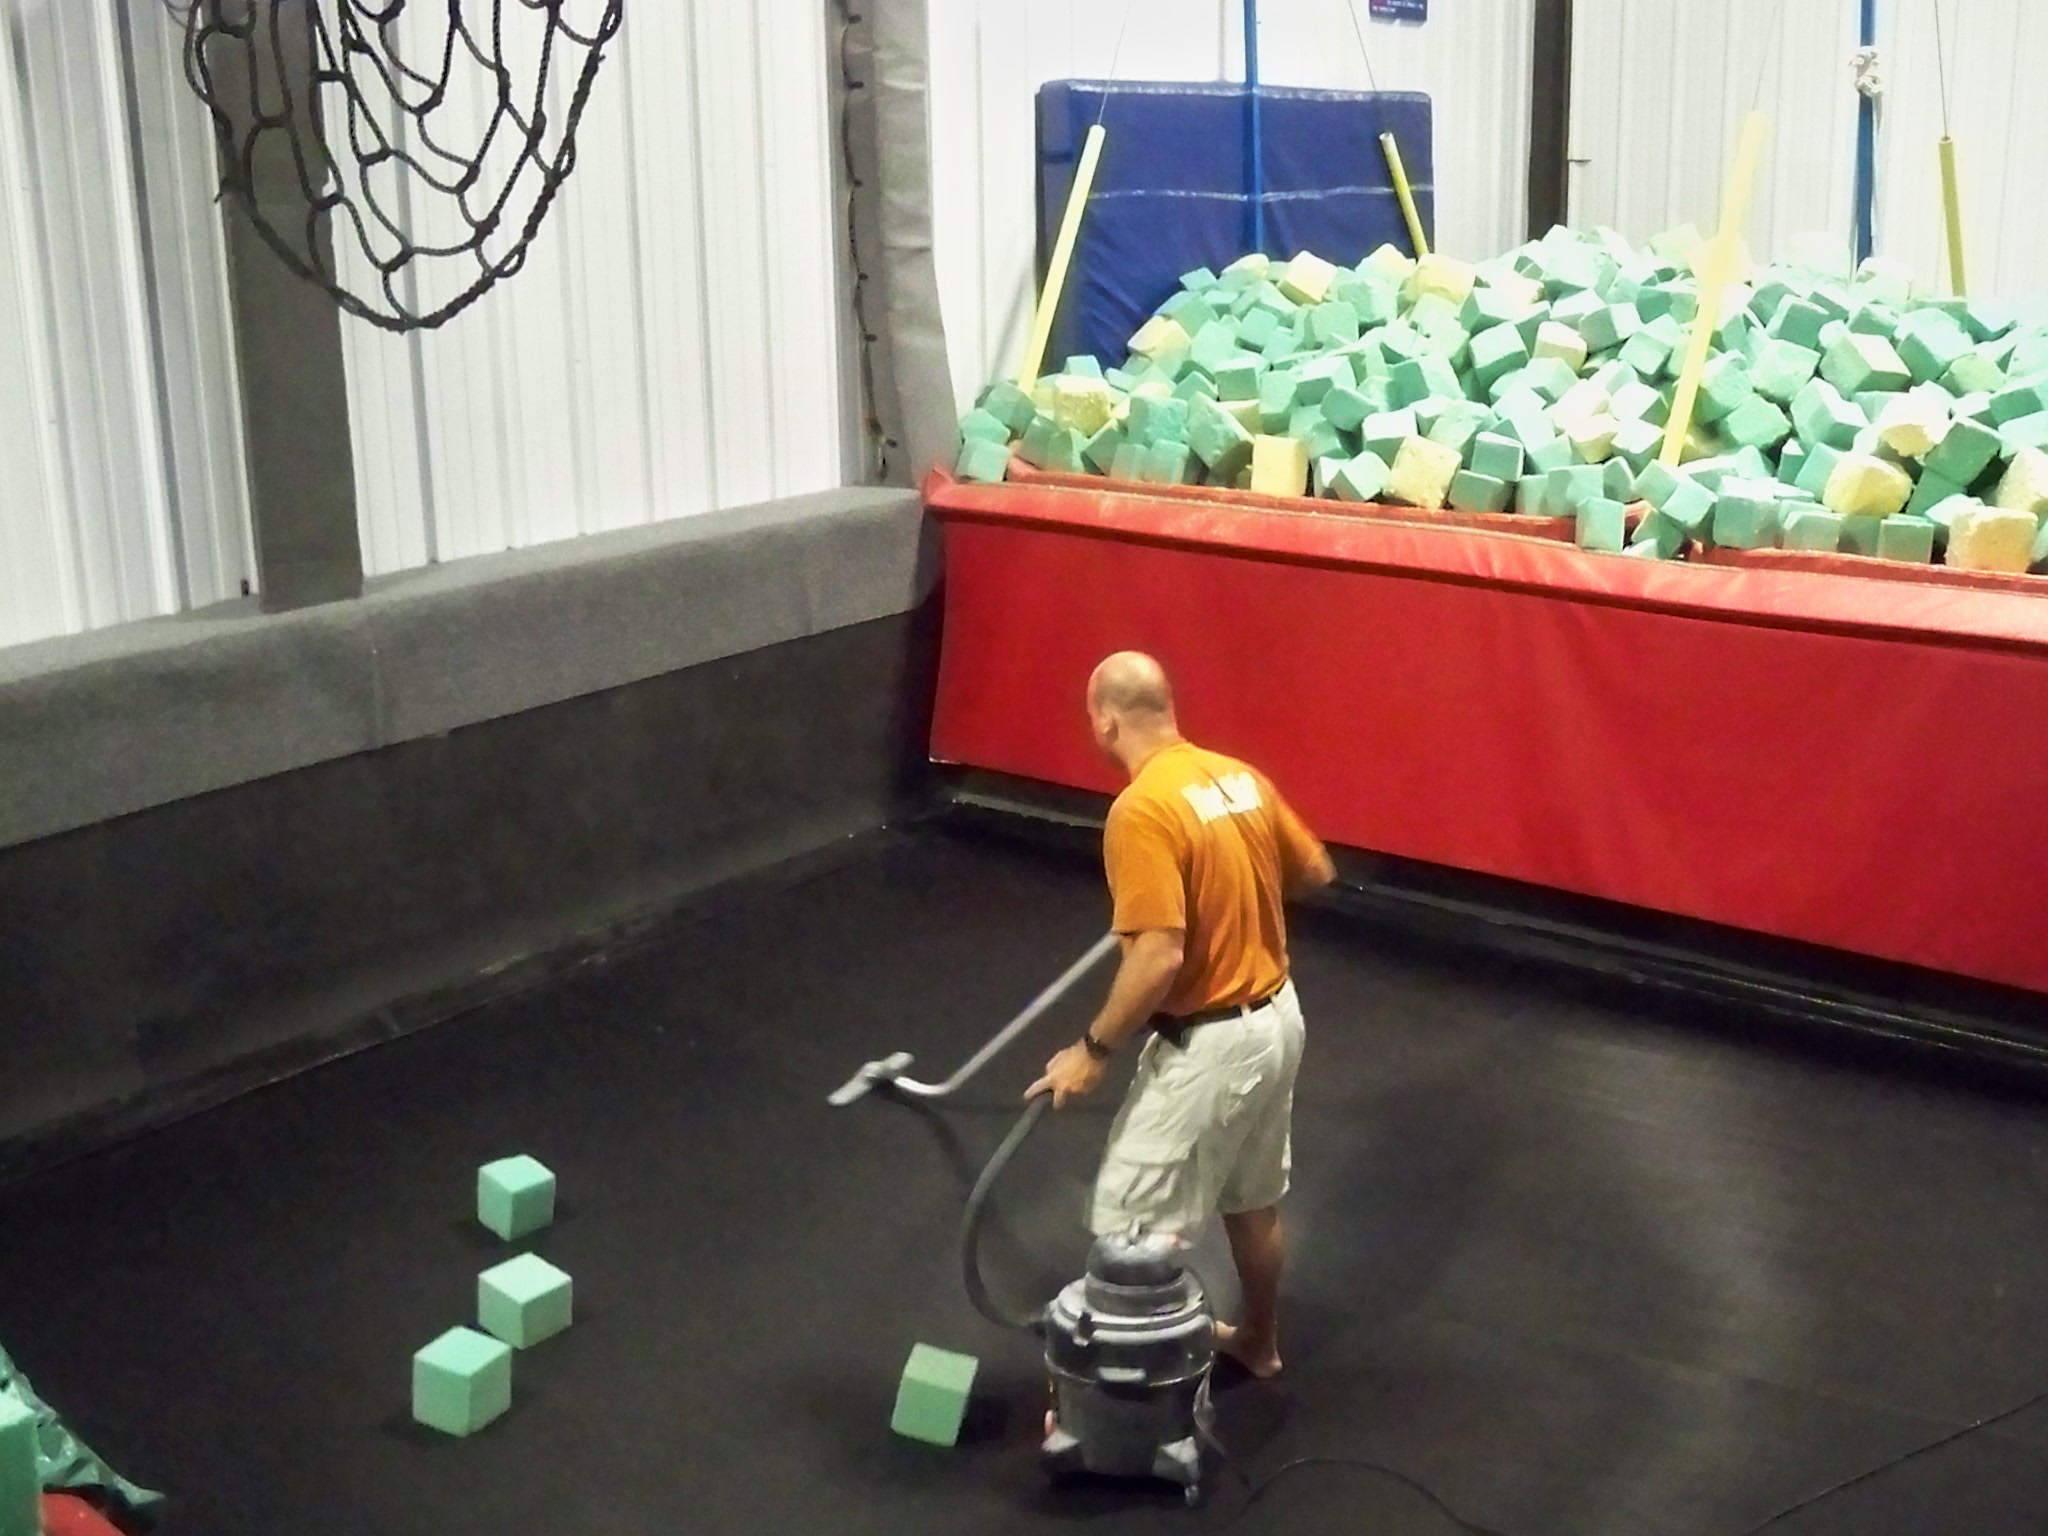 Here I am vacuuming the empty pit.